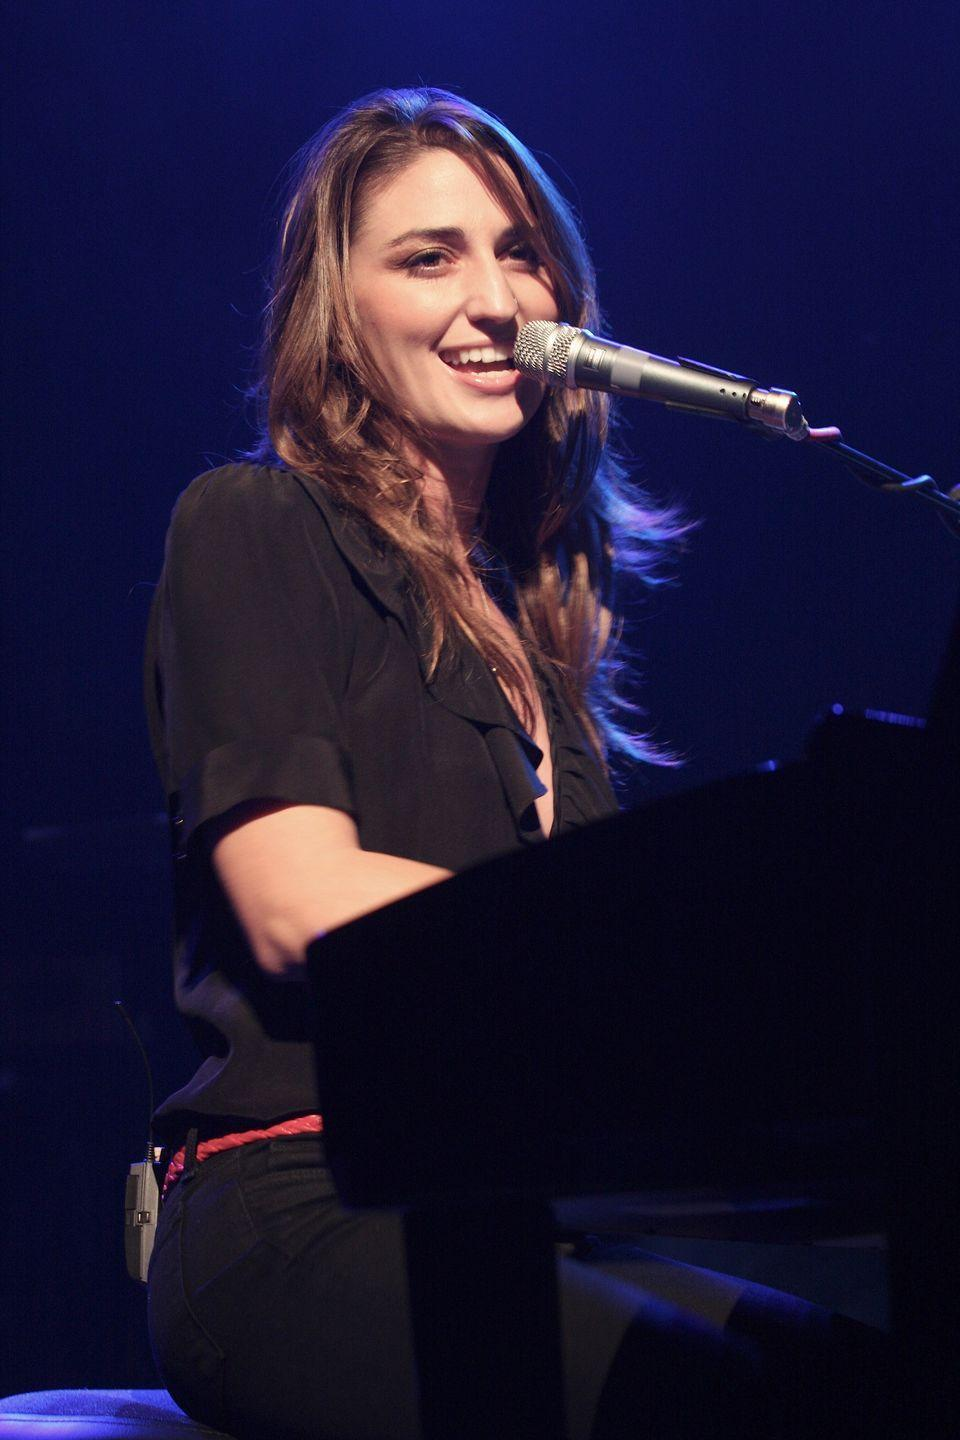 """<p>According to the singer-songwriter, plenty of people think that the story behind this song involves Sara Bareilles marching into her record label's office and telling them she wouldn't write a love song. But she later said it """"wasn't that simple."""" <br></p><p>The <a href=""""https://www.huffpost.com/entry/sara-bareilles-story-behind-love-song_n_560fdd34e4b0768127023ecd"""" data-ylk=""""slk:real story"""" class=""""link rapid-noclick-resp"""">real story</a> is that she went through some difficult co-writing sessions at the direction of her record label, but ultimately penned the now-famous song, which she says is """"a love song to my craft."""" </p>"""